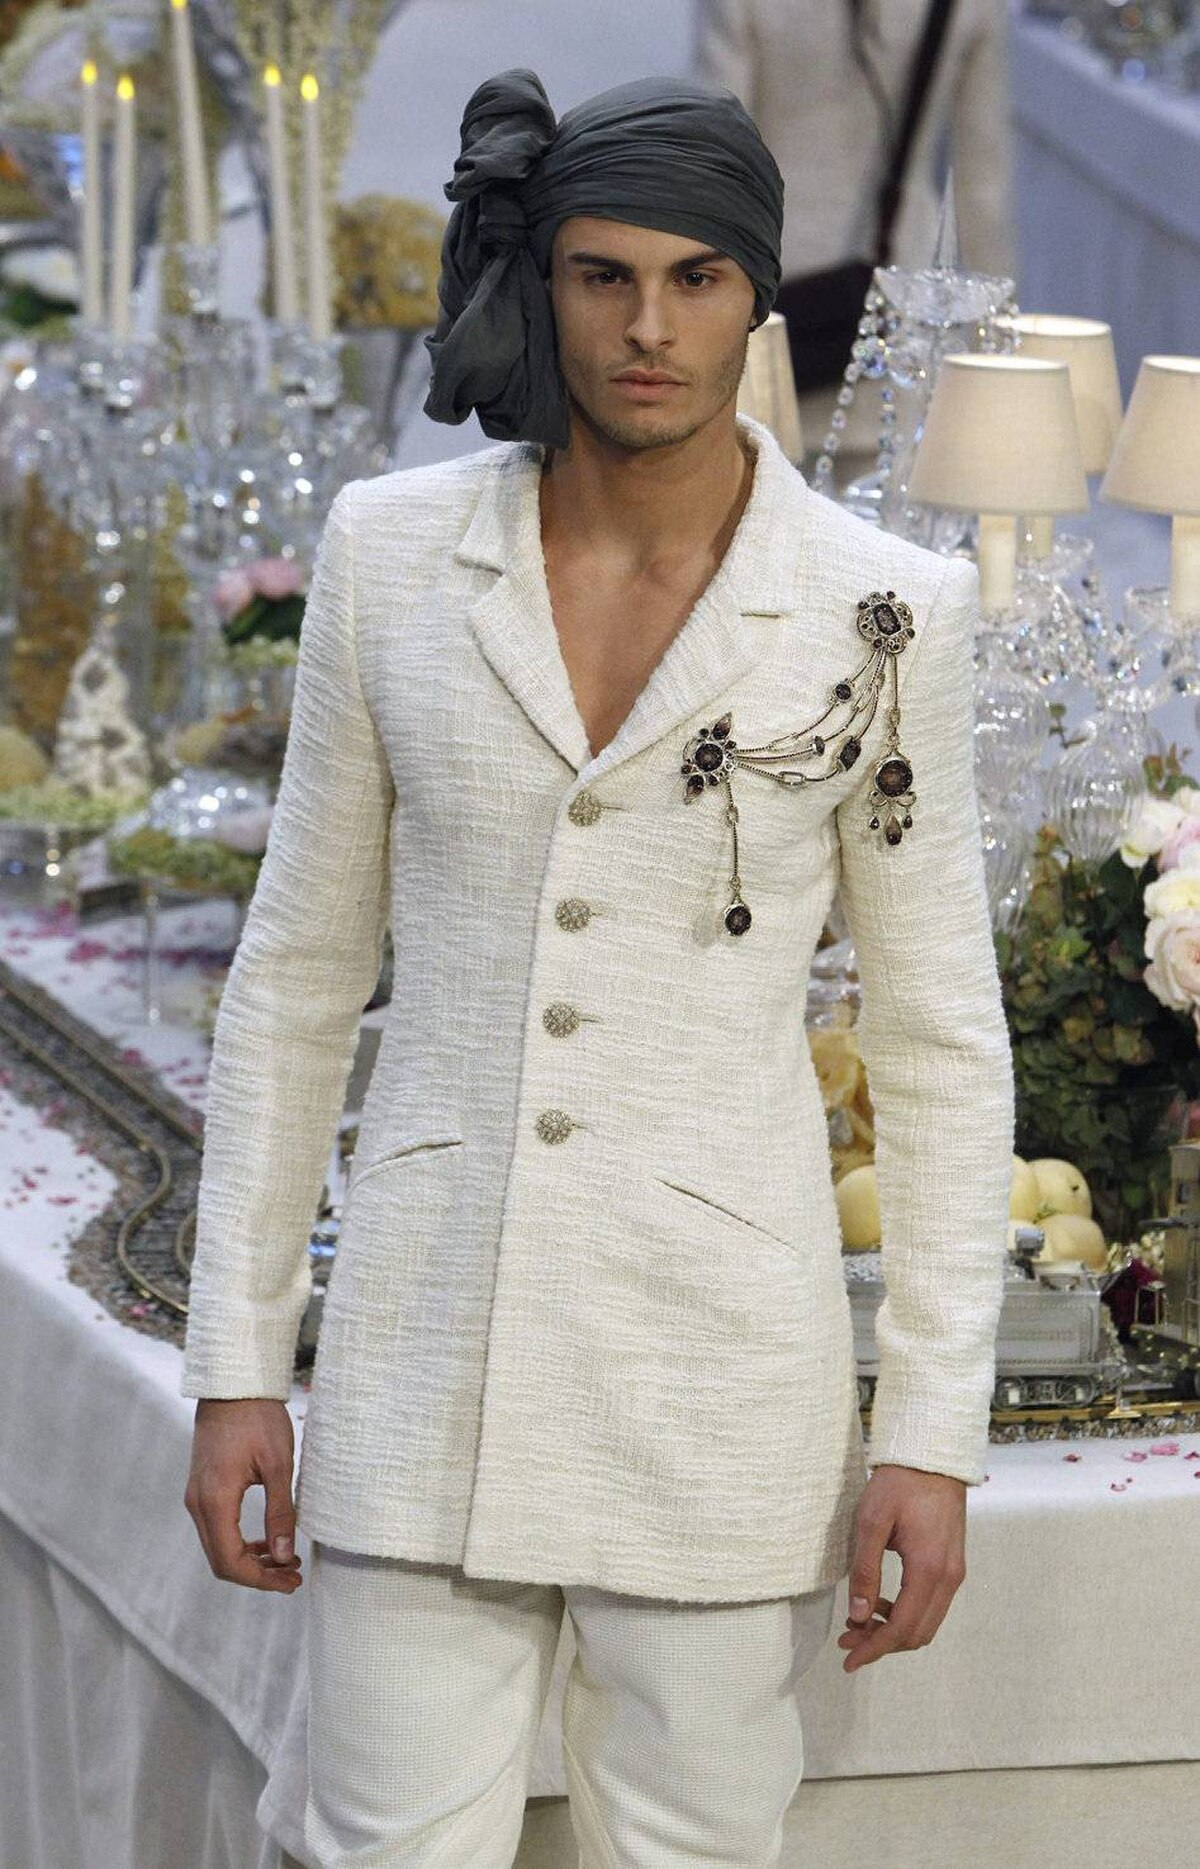 Lagerfeld didn't leave out the men entirely. All of the looks featured wrapped headdresses that weren't quite turbans but might just find a following among the unlikeliest types. Lil' Wayne, perhaps? And doesn't every man need a four-button white bouclé jacket?